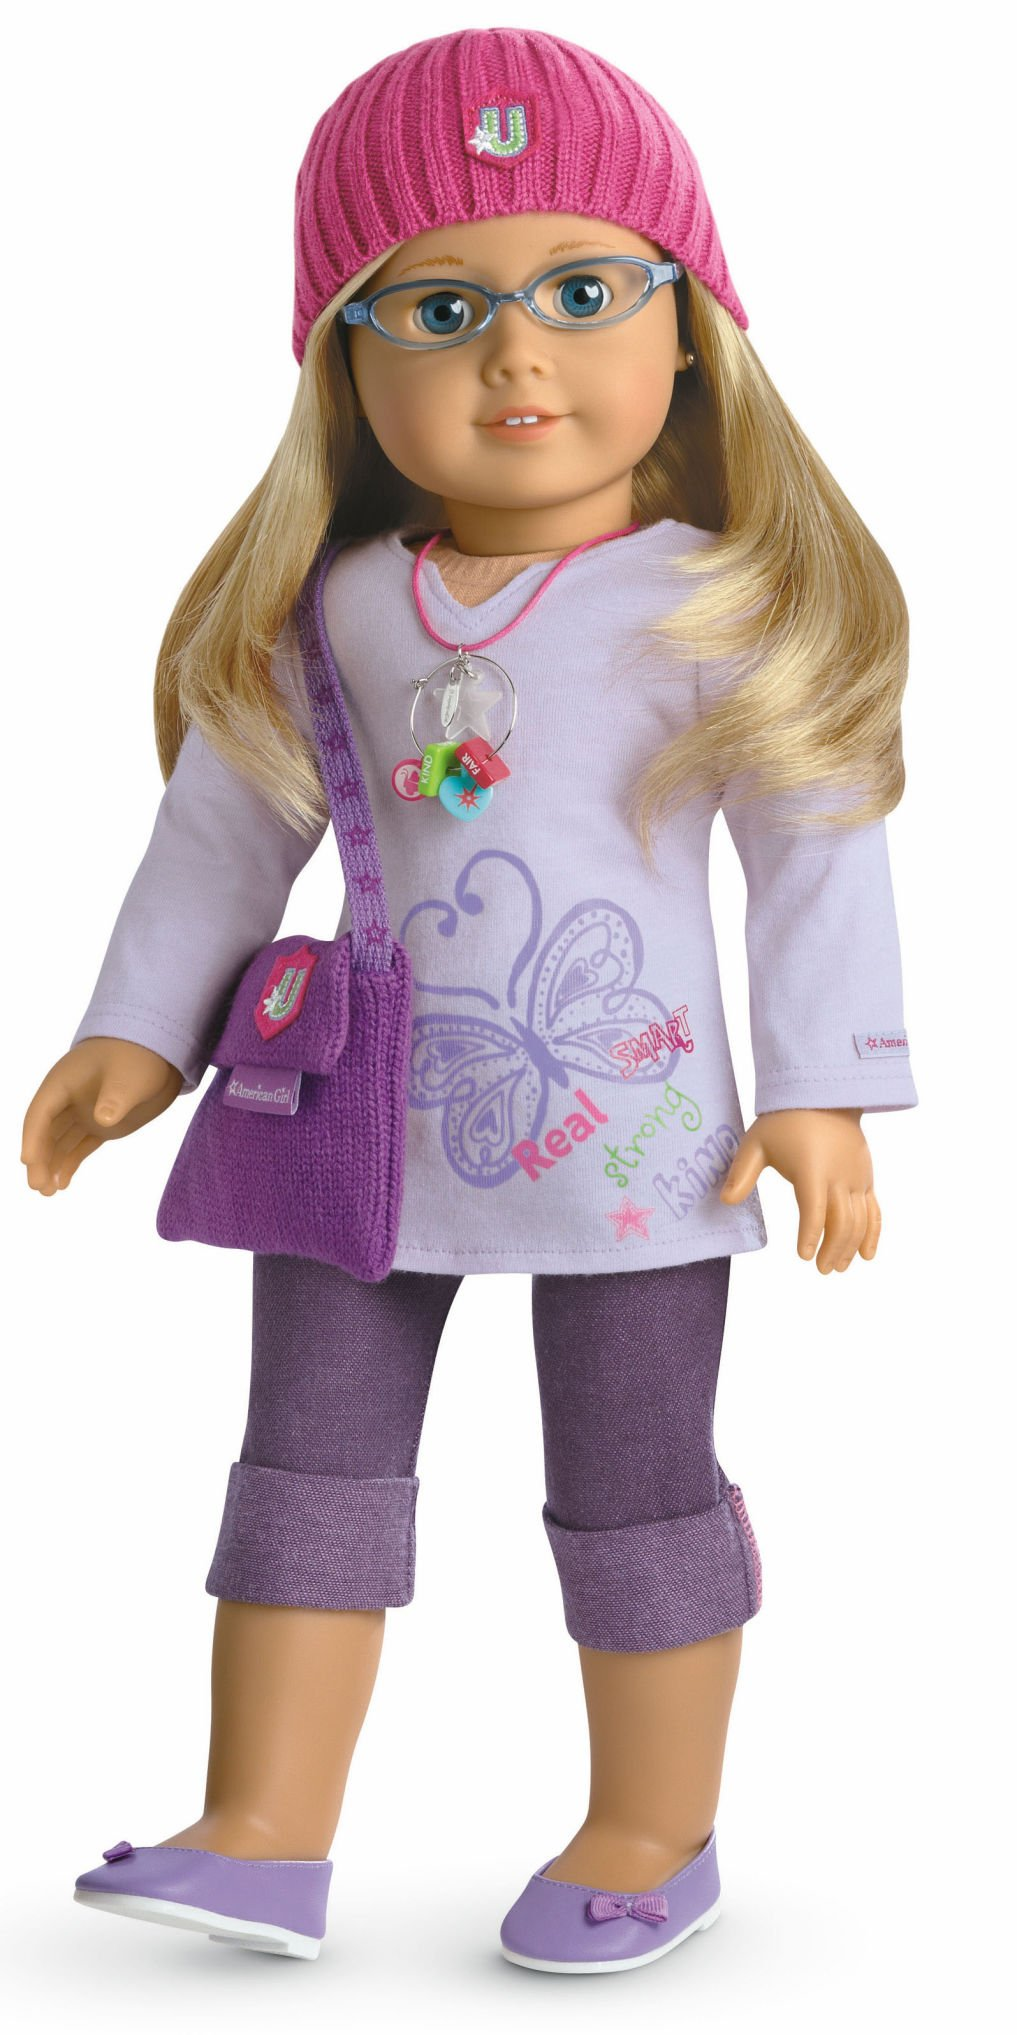 american girl doll - Ameeican Girl Doll